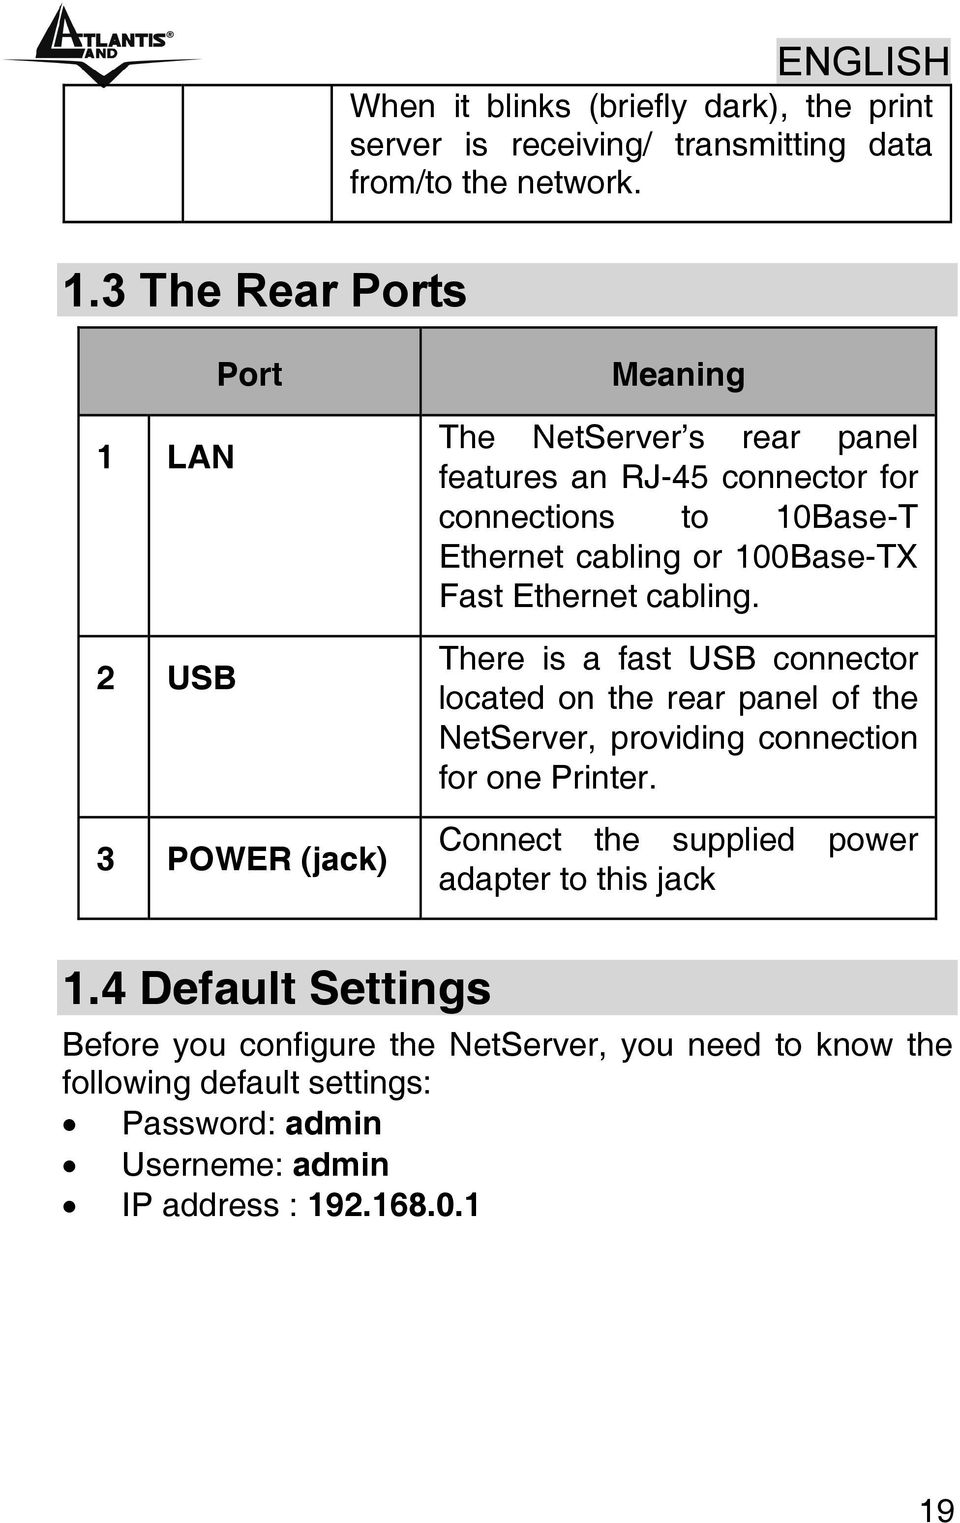 Fast Ethernet cabling. There is a fast USB connector located on the rear panel of the NetServer, providing connection for one Printer.